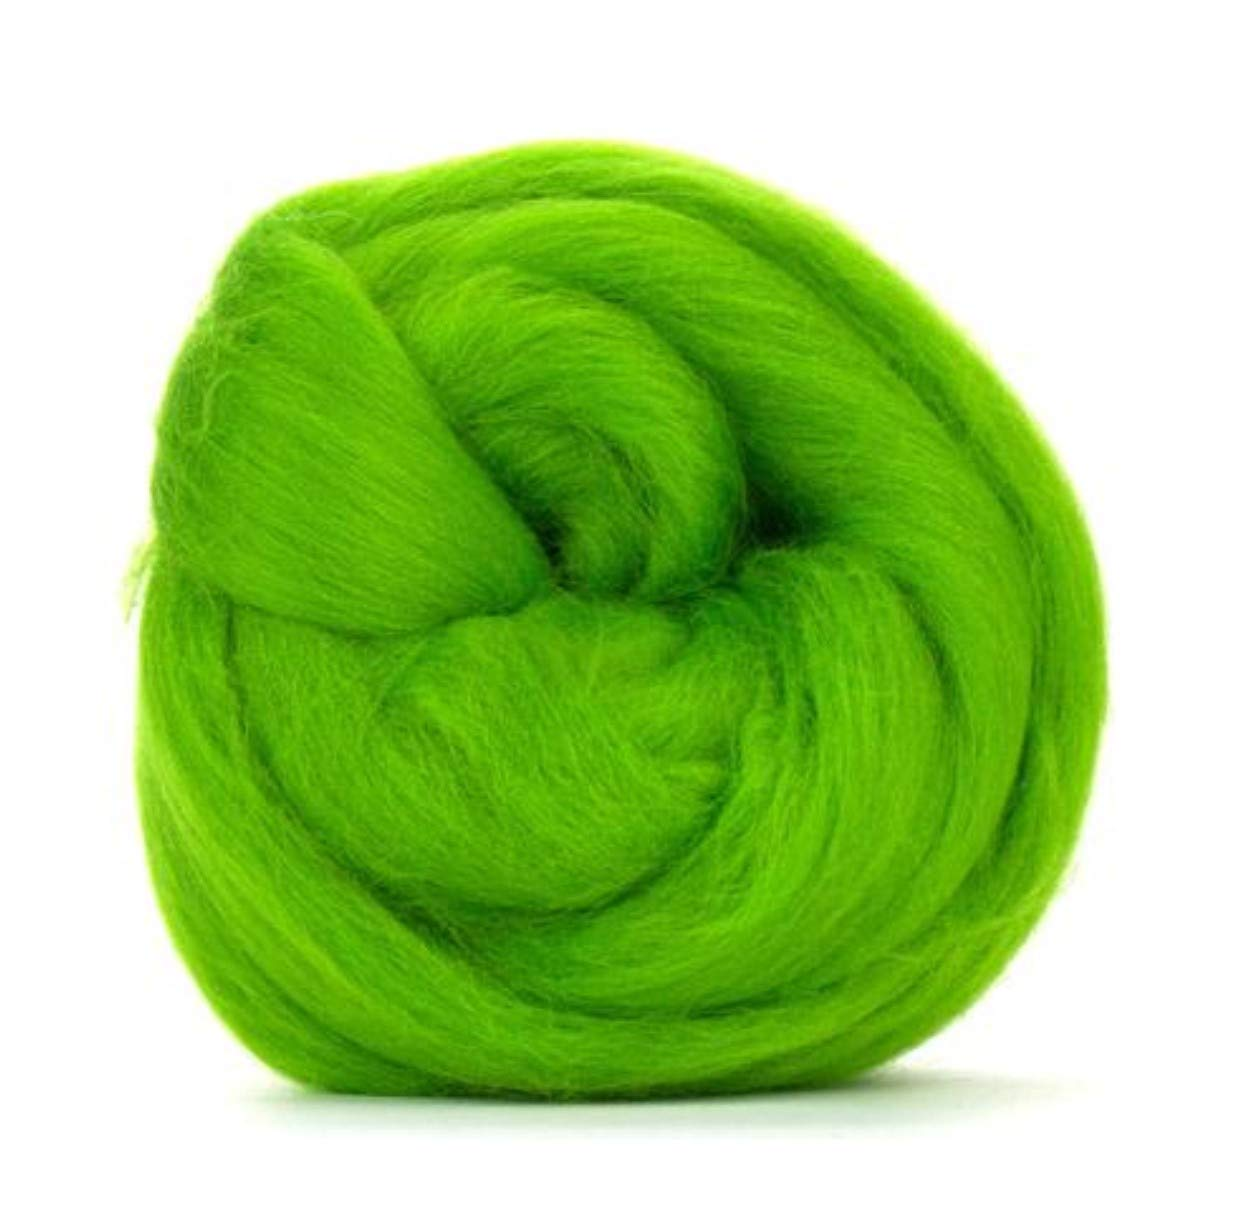 Vivid Green Merino Wool roving/Tops - 50gm. Great for Wet Felting/Needle Felting, and Hand Spinning Projects.